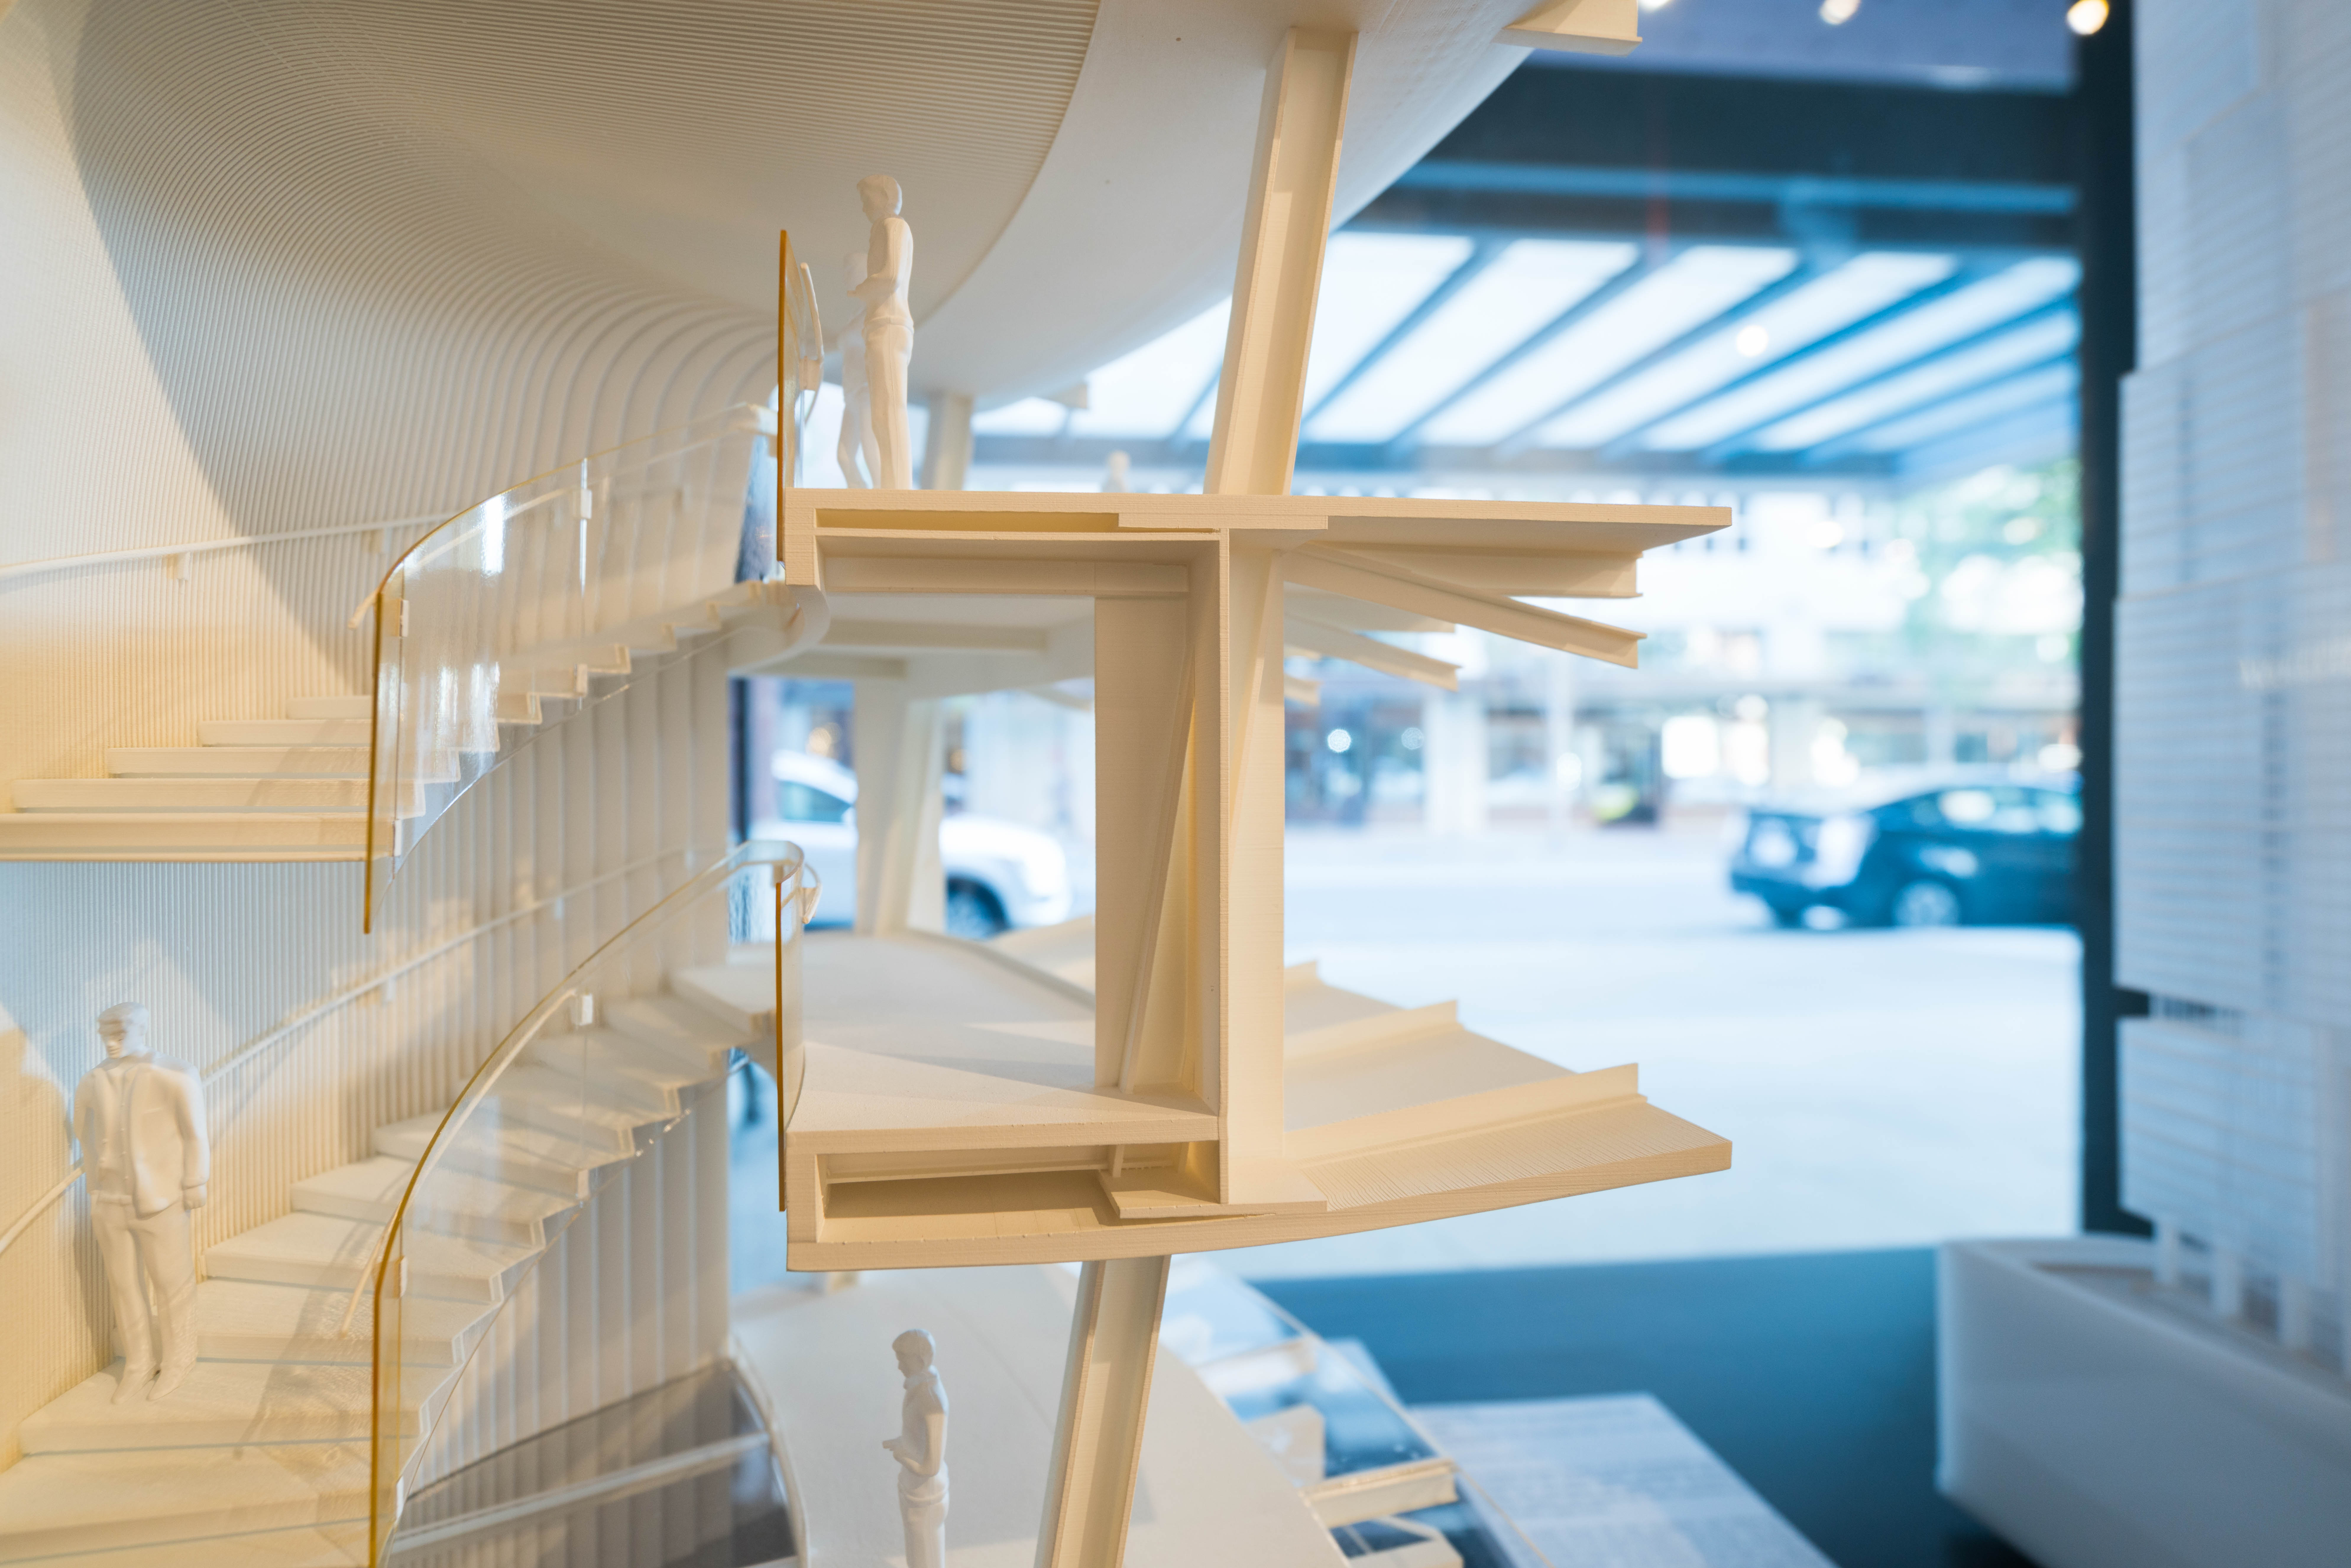 Seattle Architecture Foundation.   String Art install by the Seattle Design Nerds